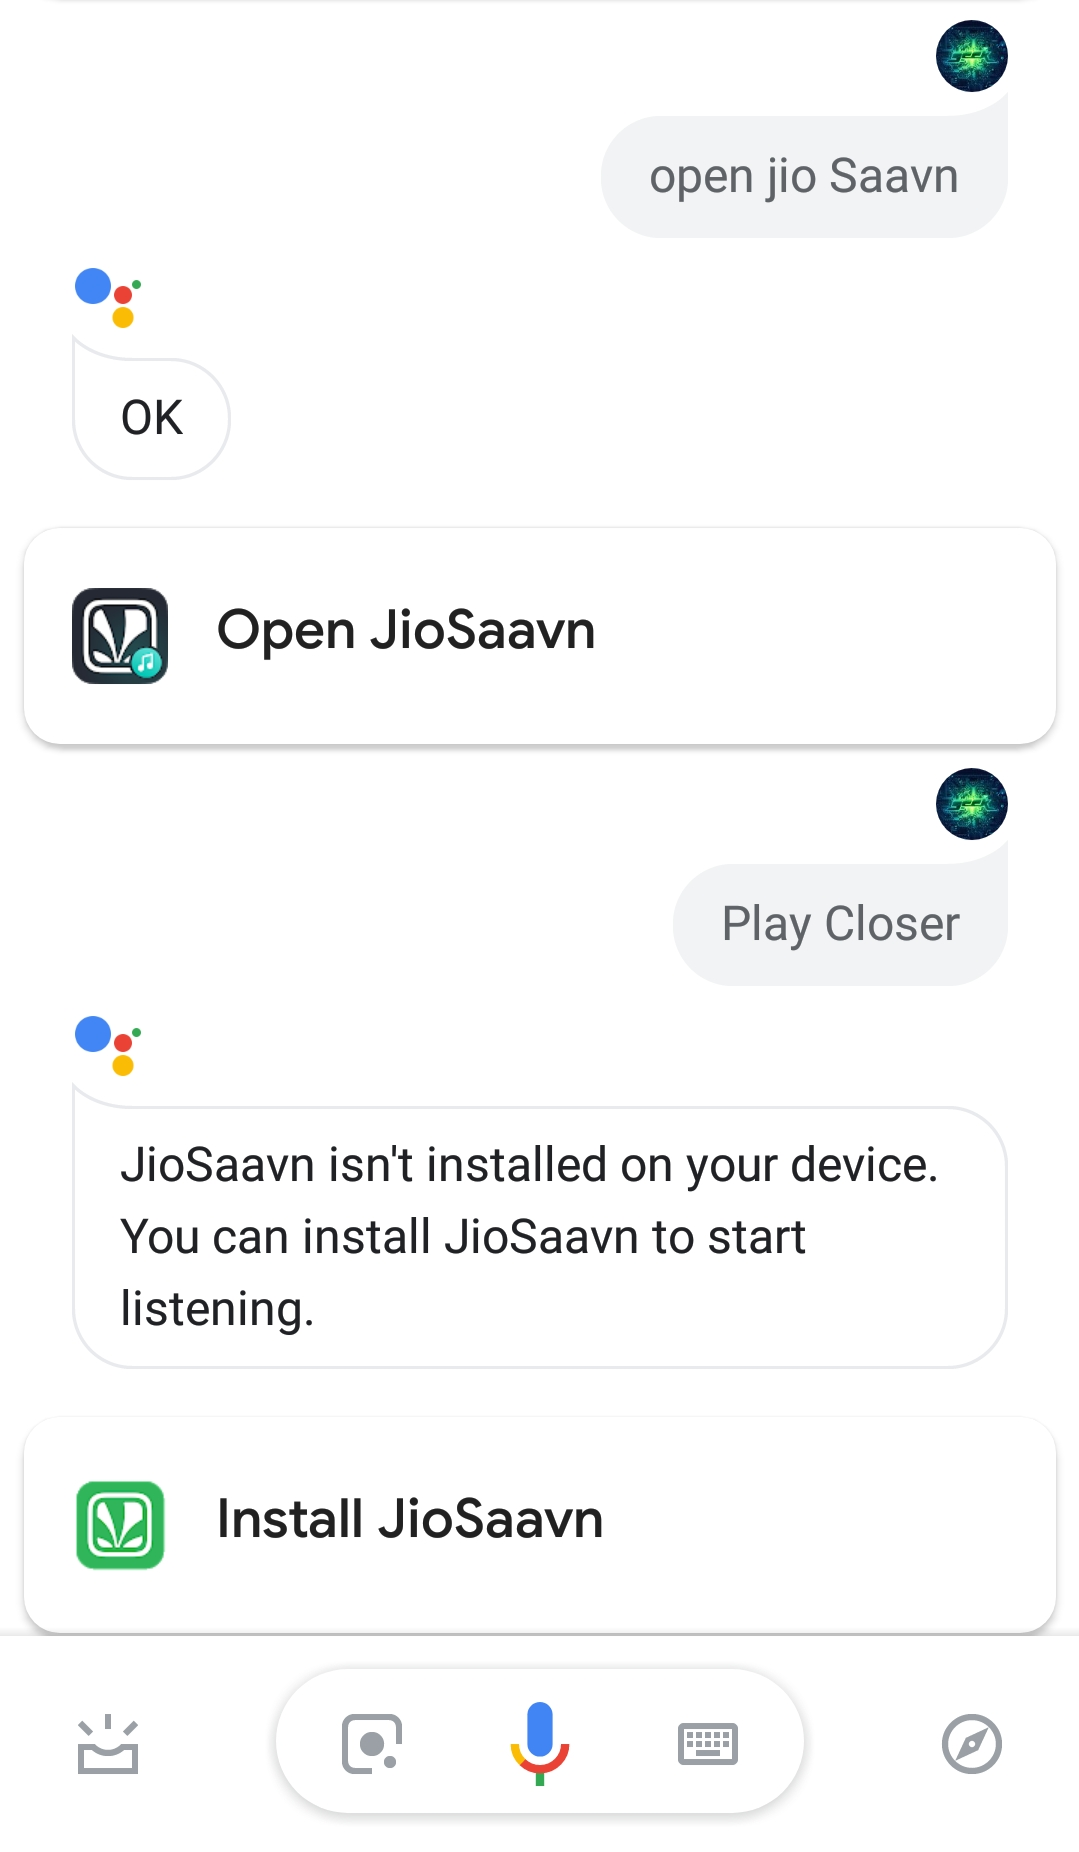 Trying to use JioSaavn Music Service for the Google